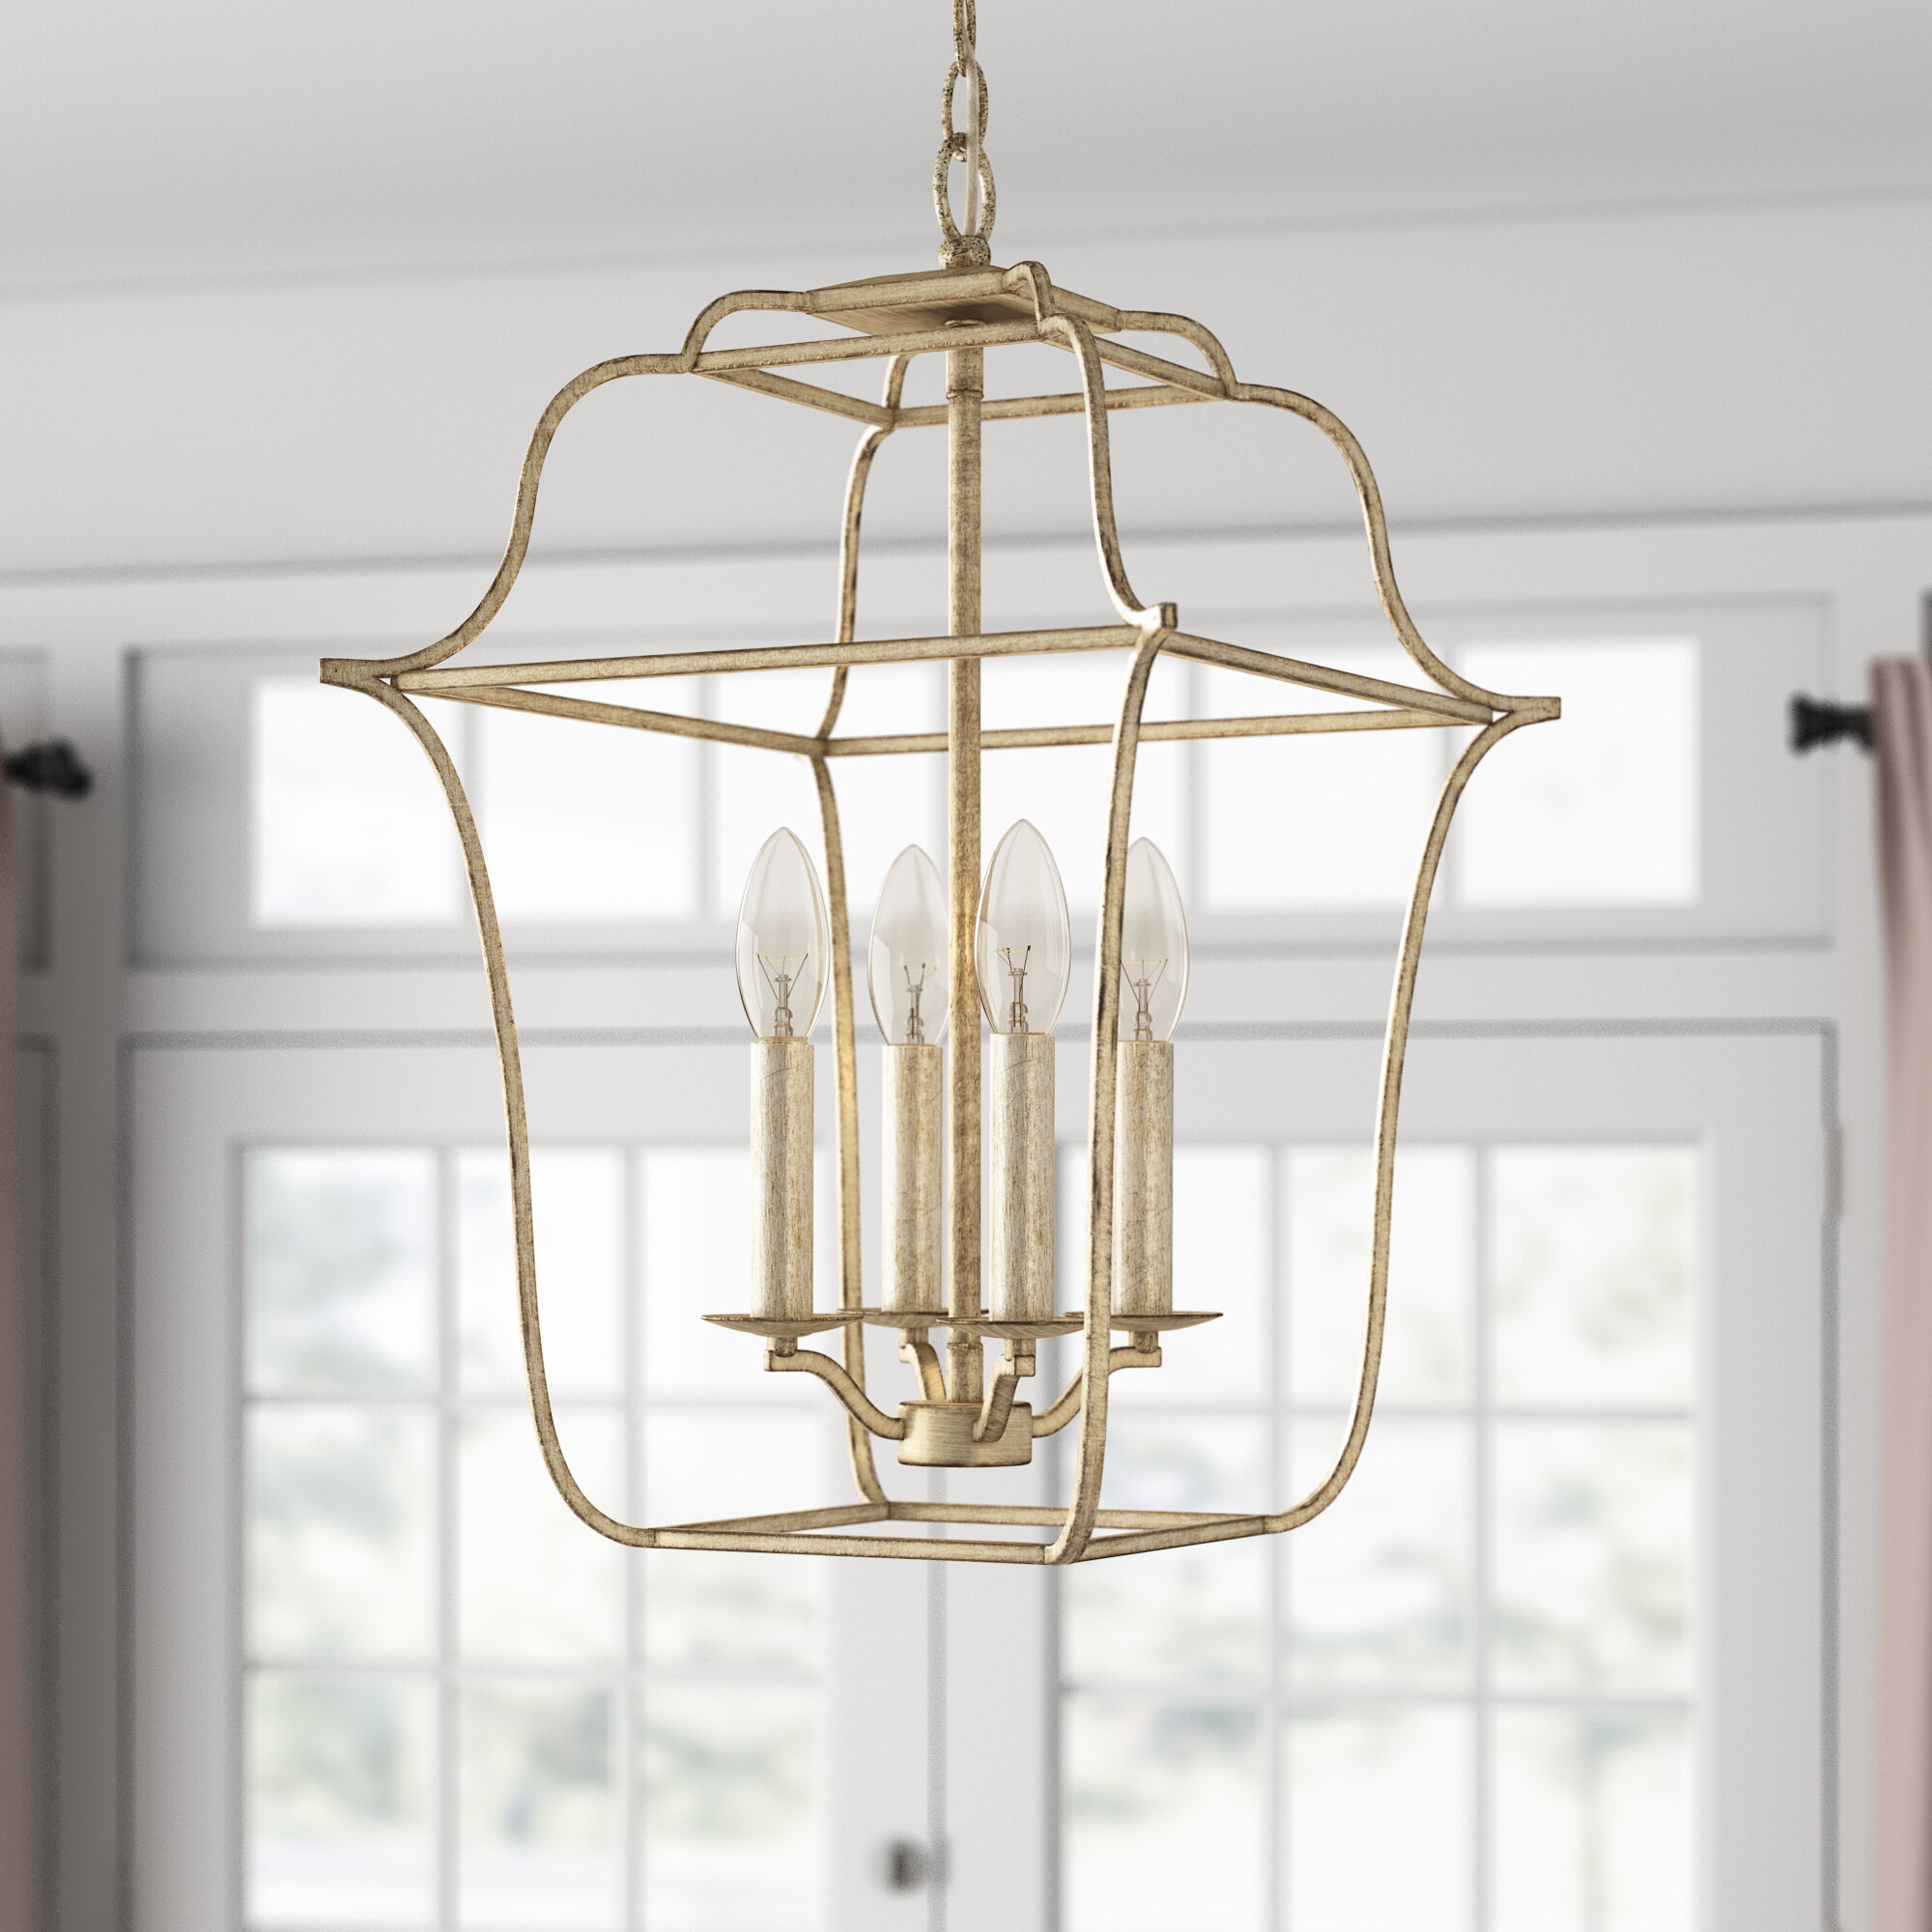 Chloe 4-Light Lantern Geometric Pendant & Reviews | Joss & Main inside Armande 3-Light Lantern Geometric Pendants (Image 13 of 30)